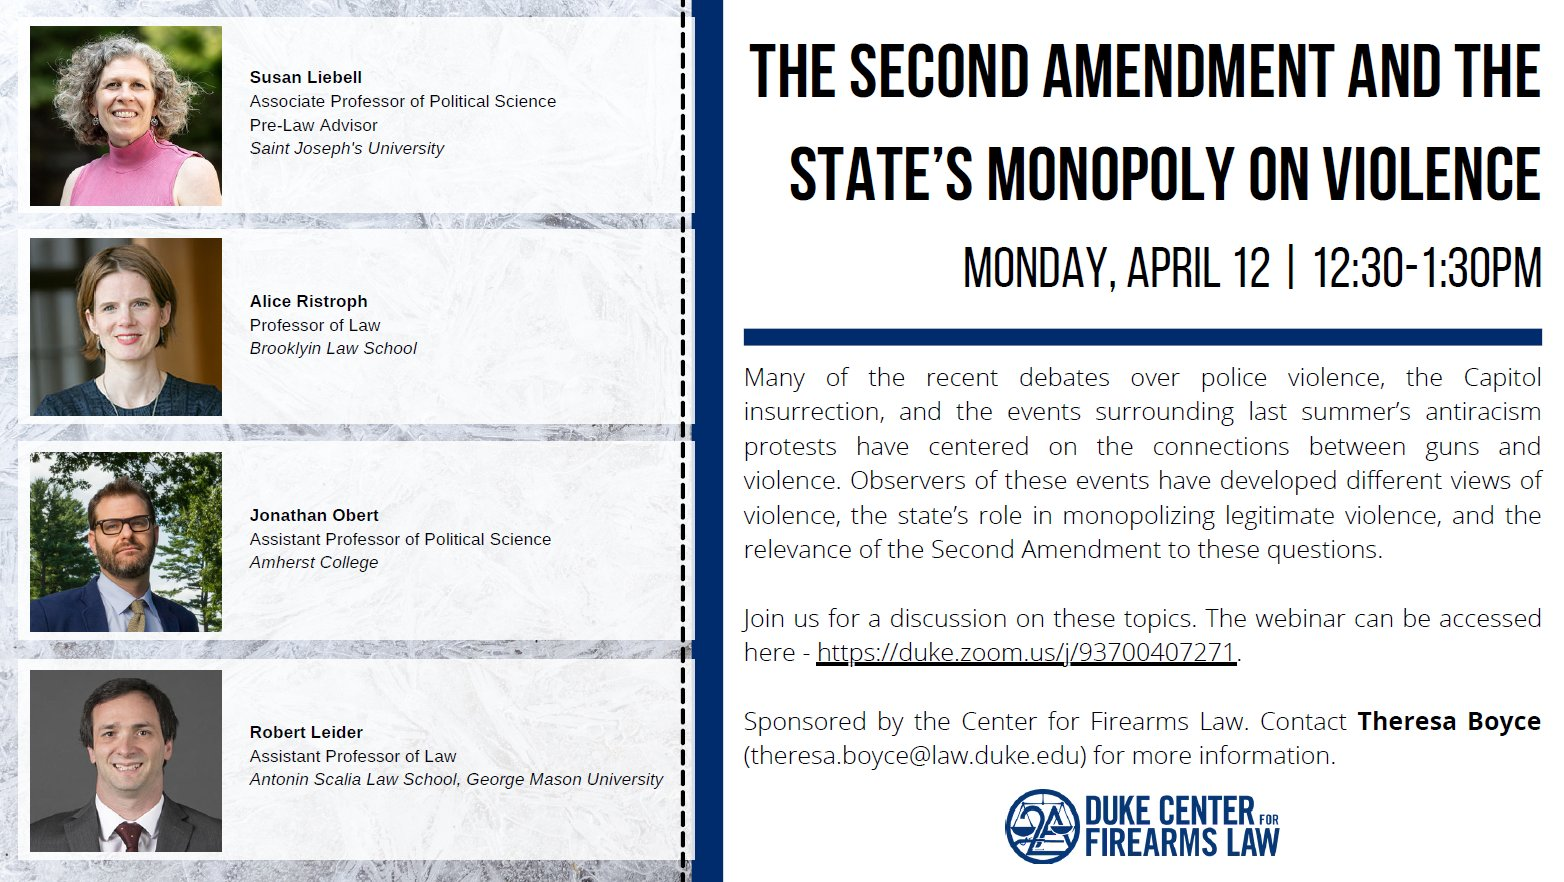 The Second Amendment and the State's Monopoly on Violence 12:30 PM • Virtual Many of the recent debates over police violence, the Capitol insurrection, and the events surrounding last summer's antiracism protests have centered on the connections between guns and violence. Observers of these events have developed different views of violence, the state's role in monopolizing legitimate violence, and the relevance of the Second Amendment to these questions. Join us for a discussion on these topics with Susan Liebell,Associate Professor of Political Science and Pre-Law Advisor, St. Joseph's University; Alice Ristroph, Professor of Law, Brooklyn Law School; Jonathan Obert, Assistant Professor of Political Science at Amherst College; and Robert Leider, Assistant Professor of Law at Antonin Scalia Law School, George Mason University. The webinar can be access here - https://duke.zoom.us/j/93700407271. Sponsored by the Center for Firearms Law. Contact Theresa Boyce (Theresa.boyce@law.duke.edu)